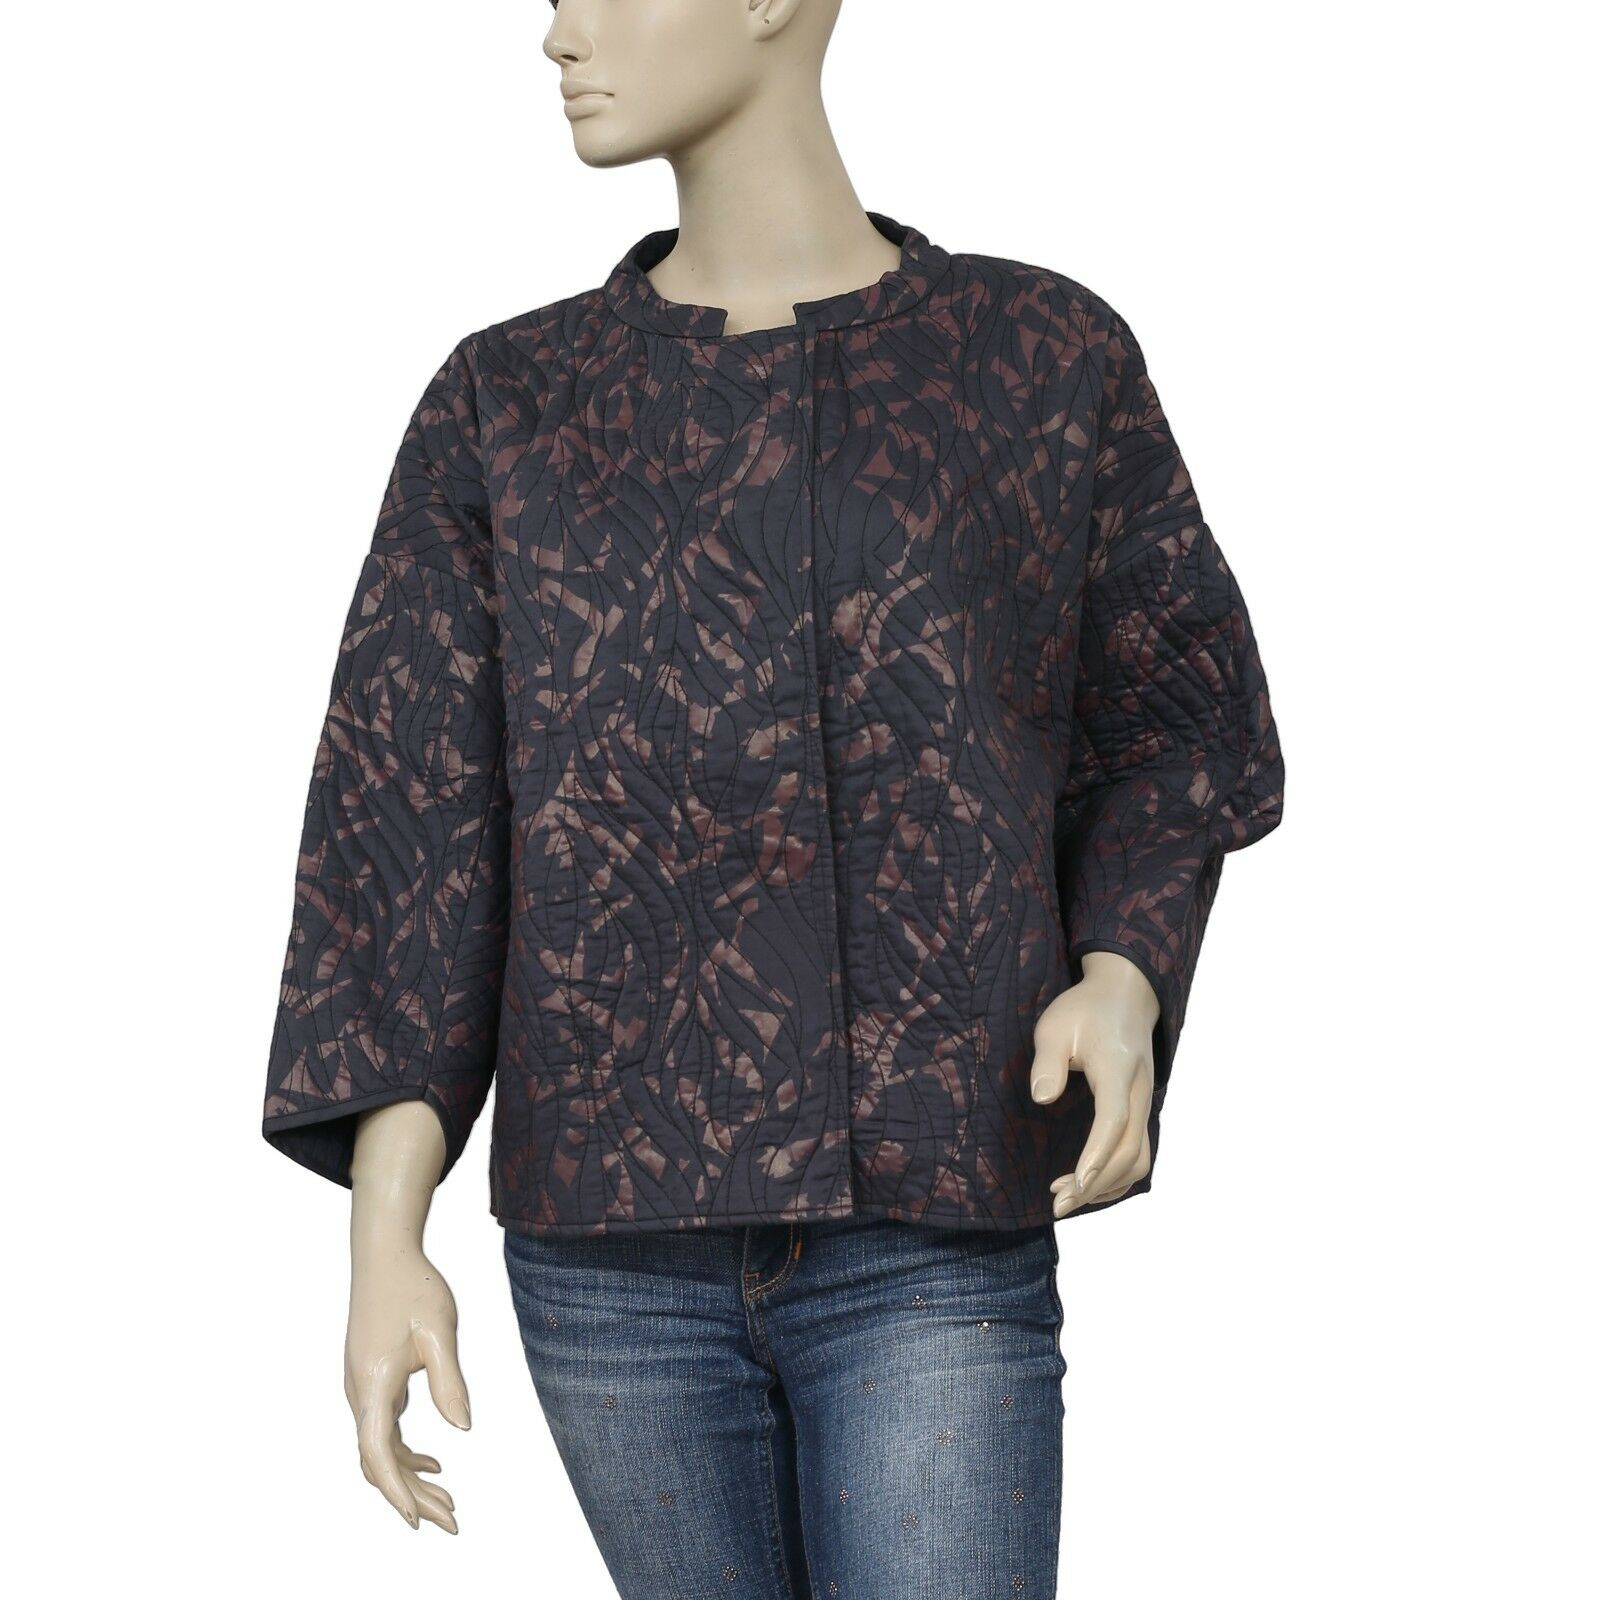 180260 New Ginger Printed Quilted Buttondown schwarz Jacket Top Large L 42